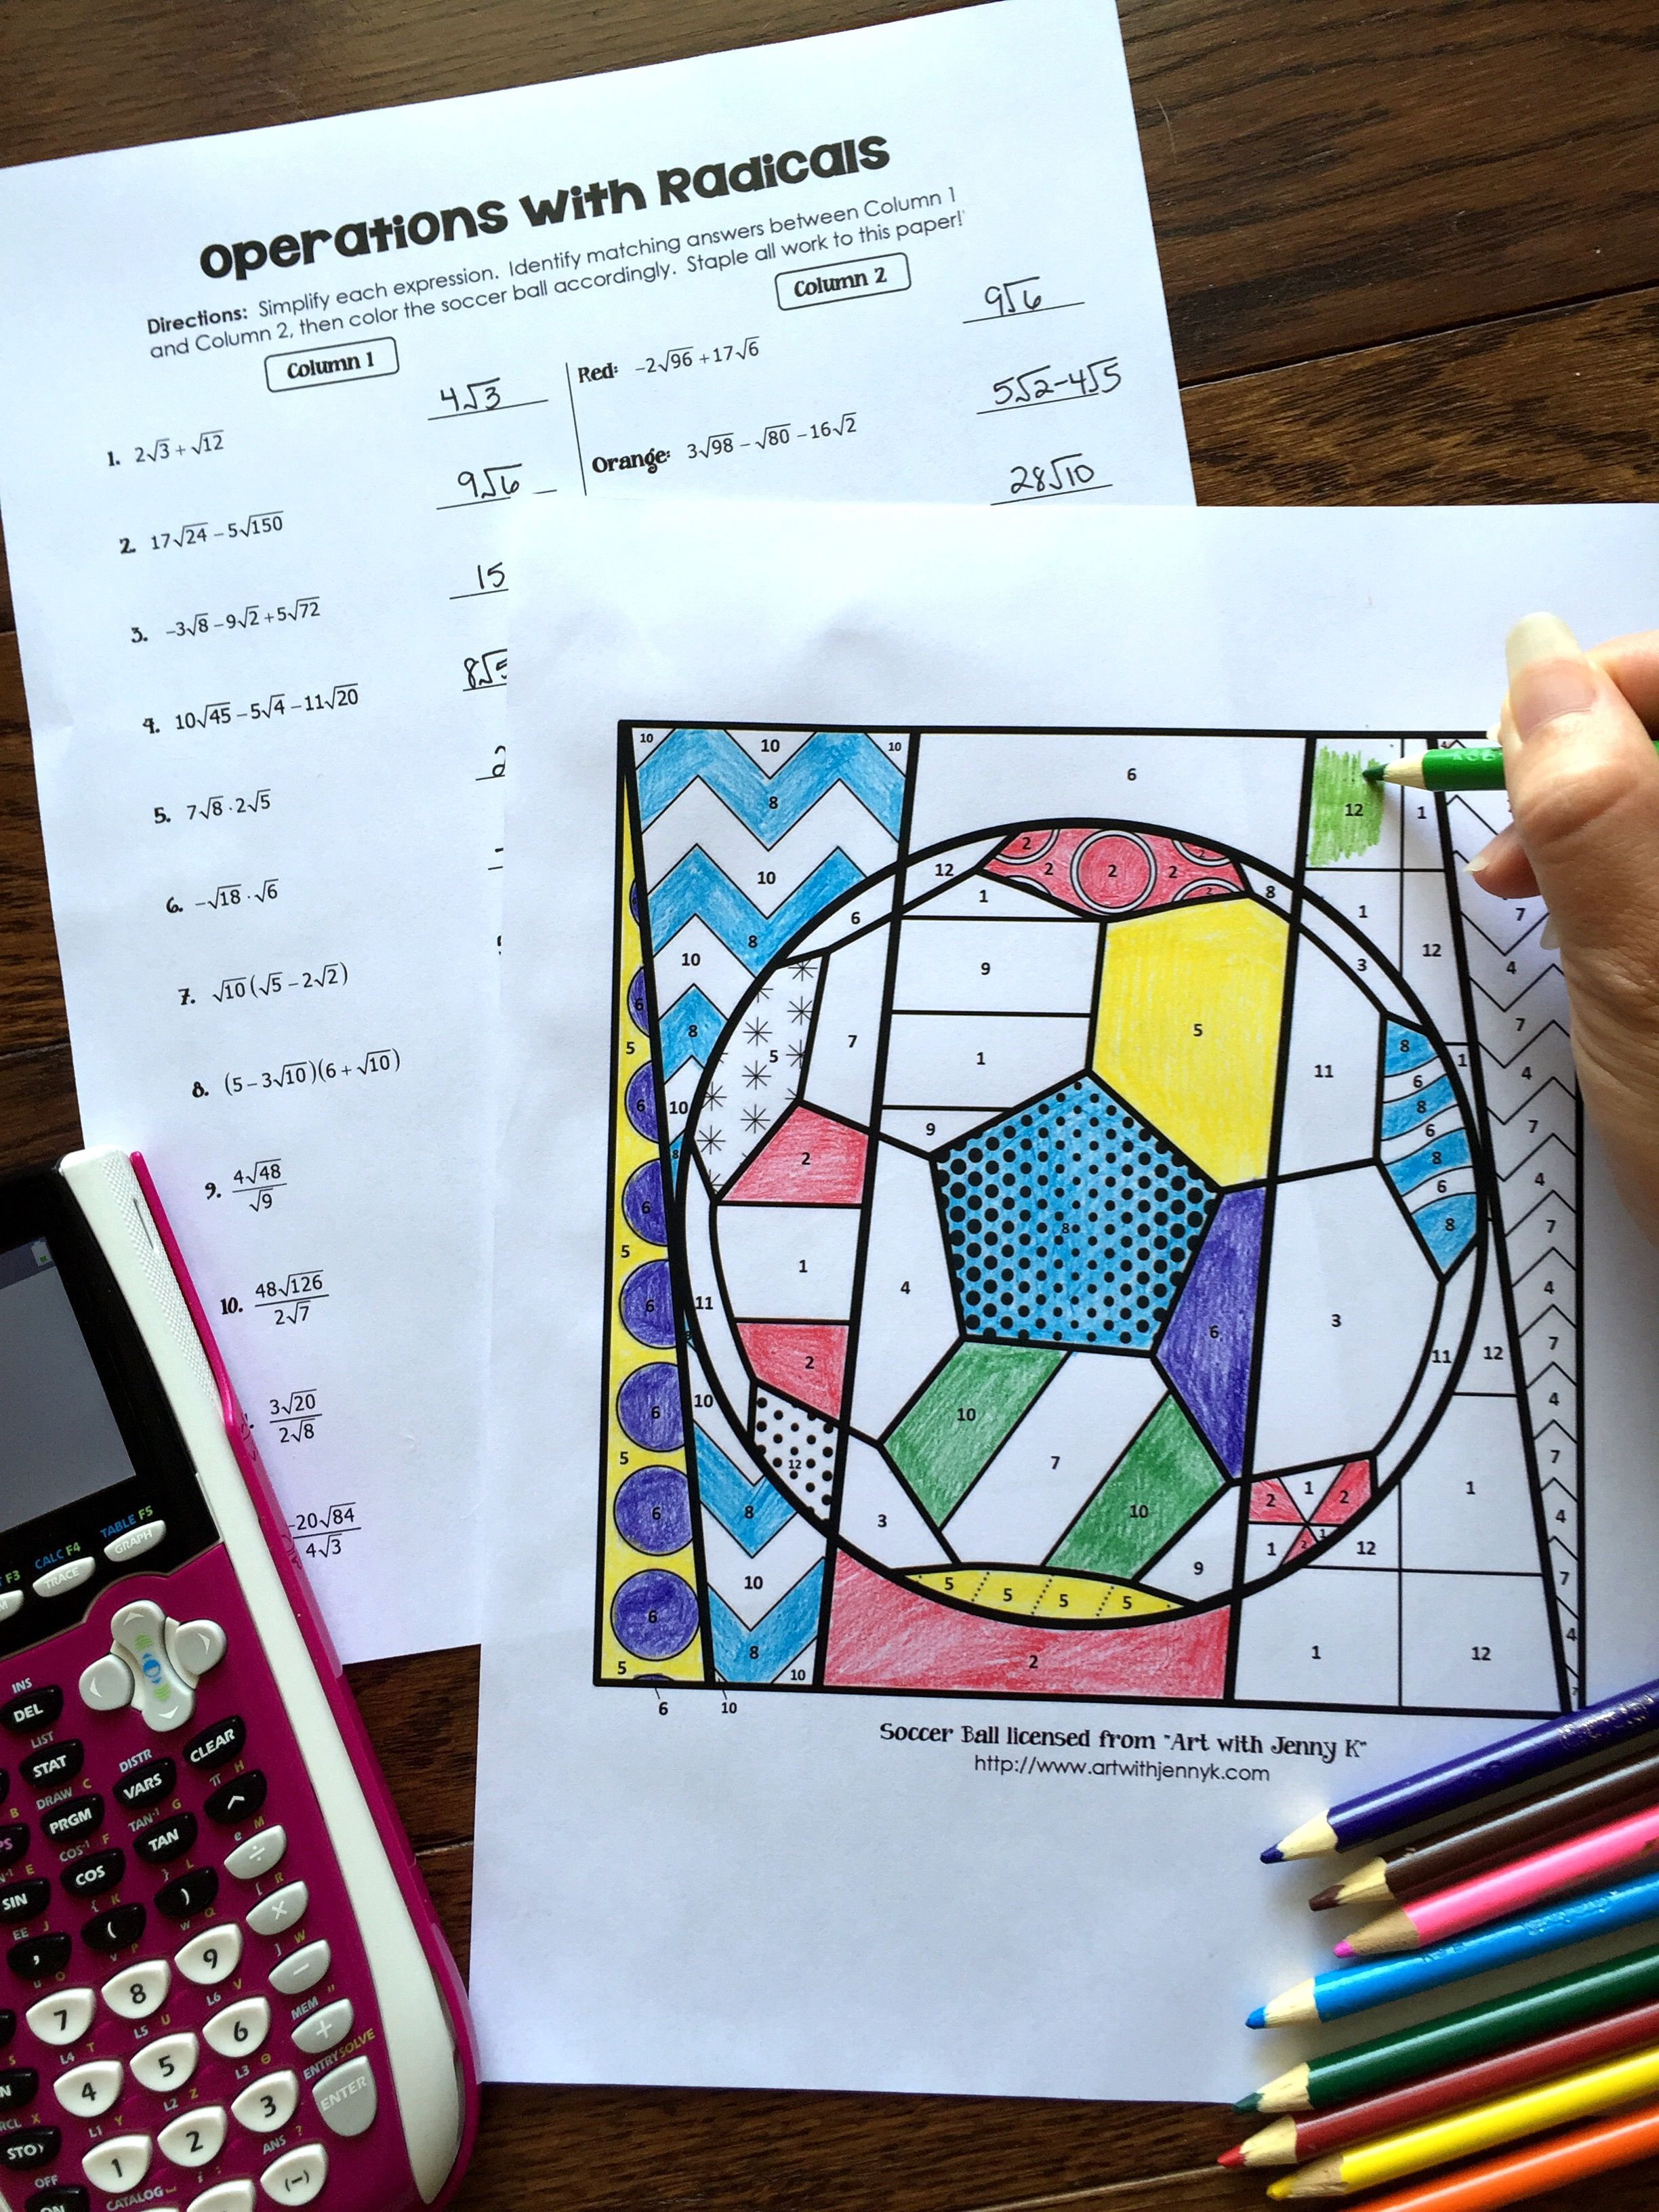 Proportion Equations Worksheet Radical Operations Coloring Activity  Activities Algebra And Math Maths Year 1 Worksheets Word with Food Group Worksheets Word Radical Operations Coloring Activity Math Facts Multiplication Worksheets